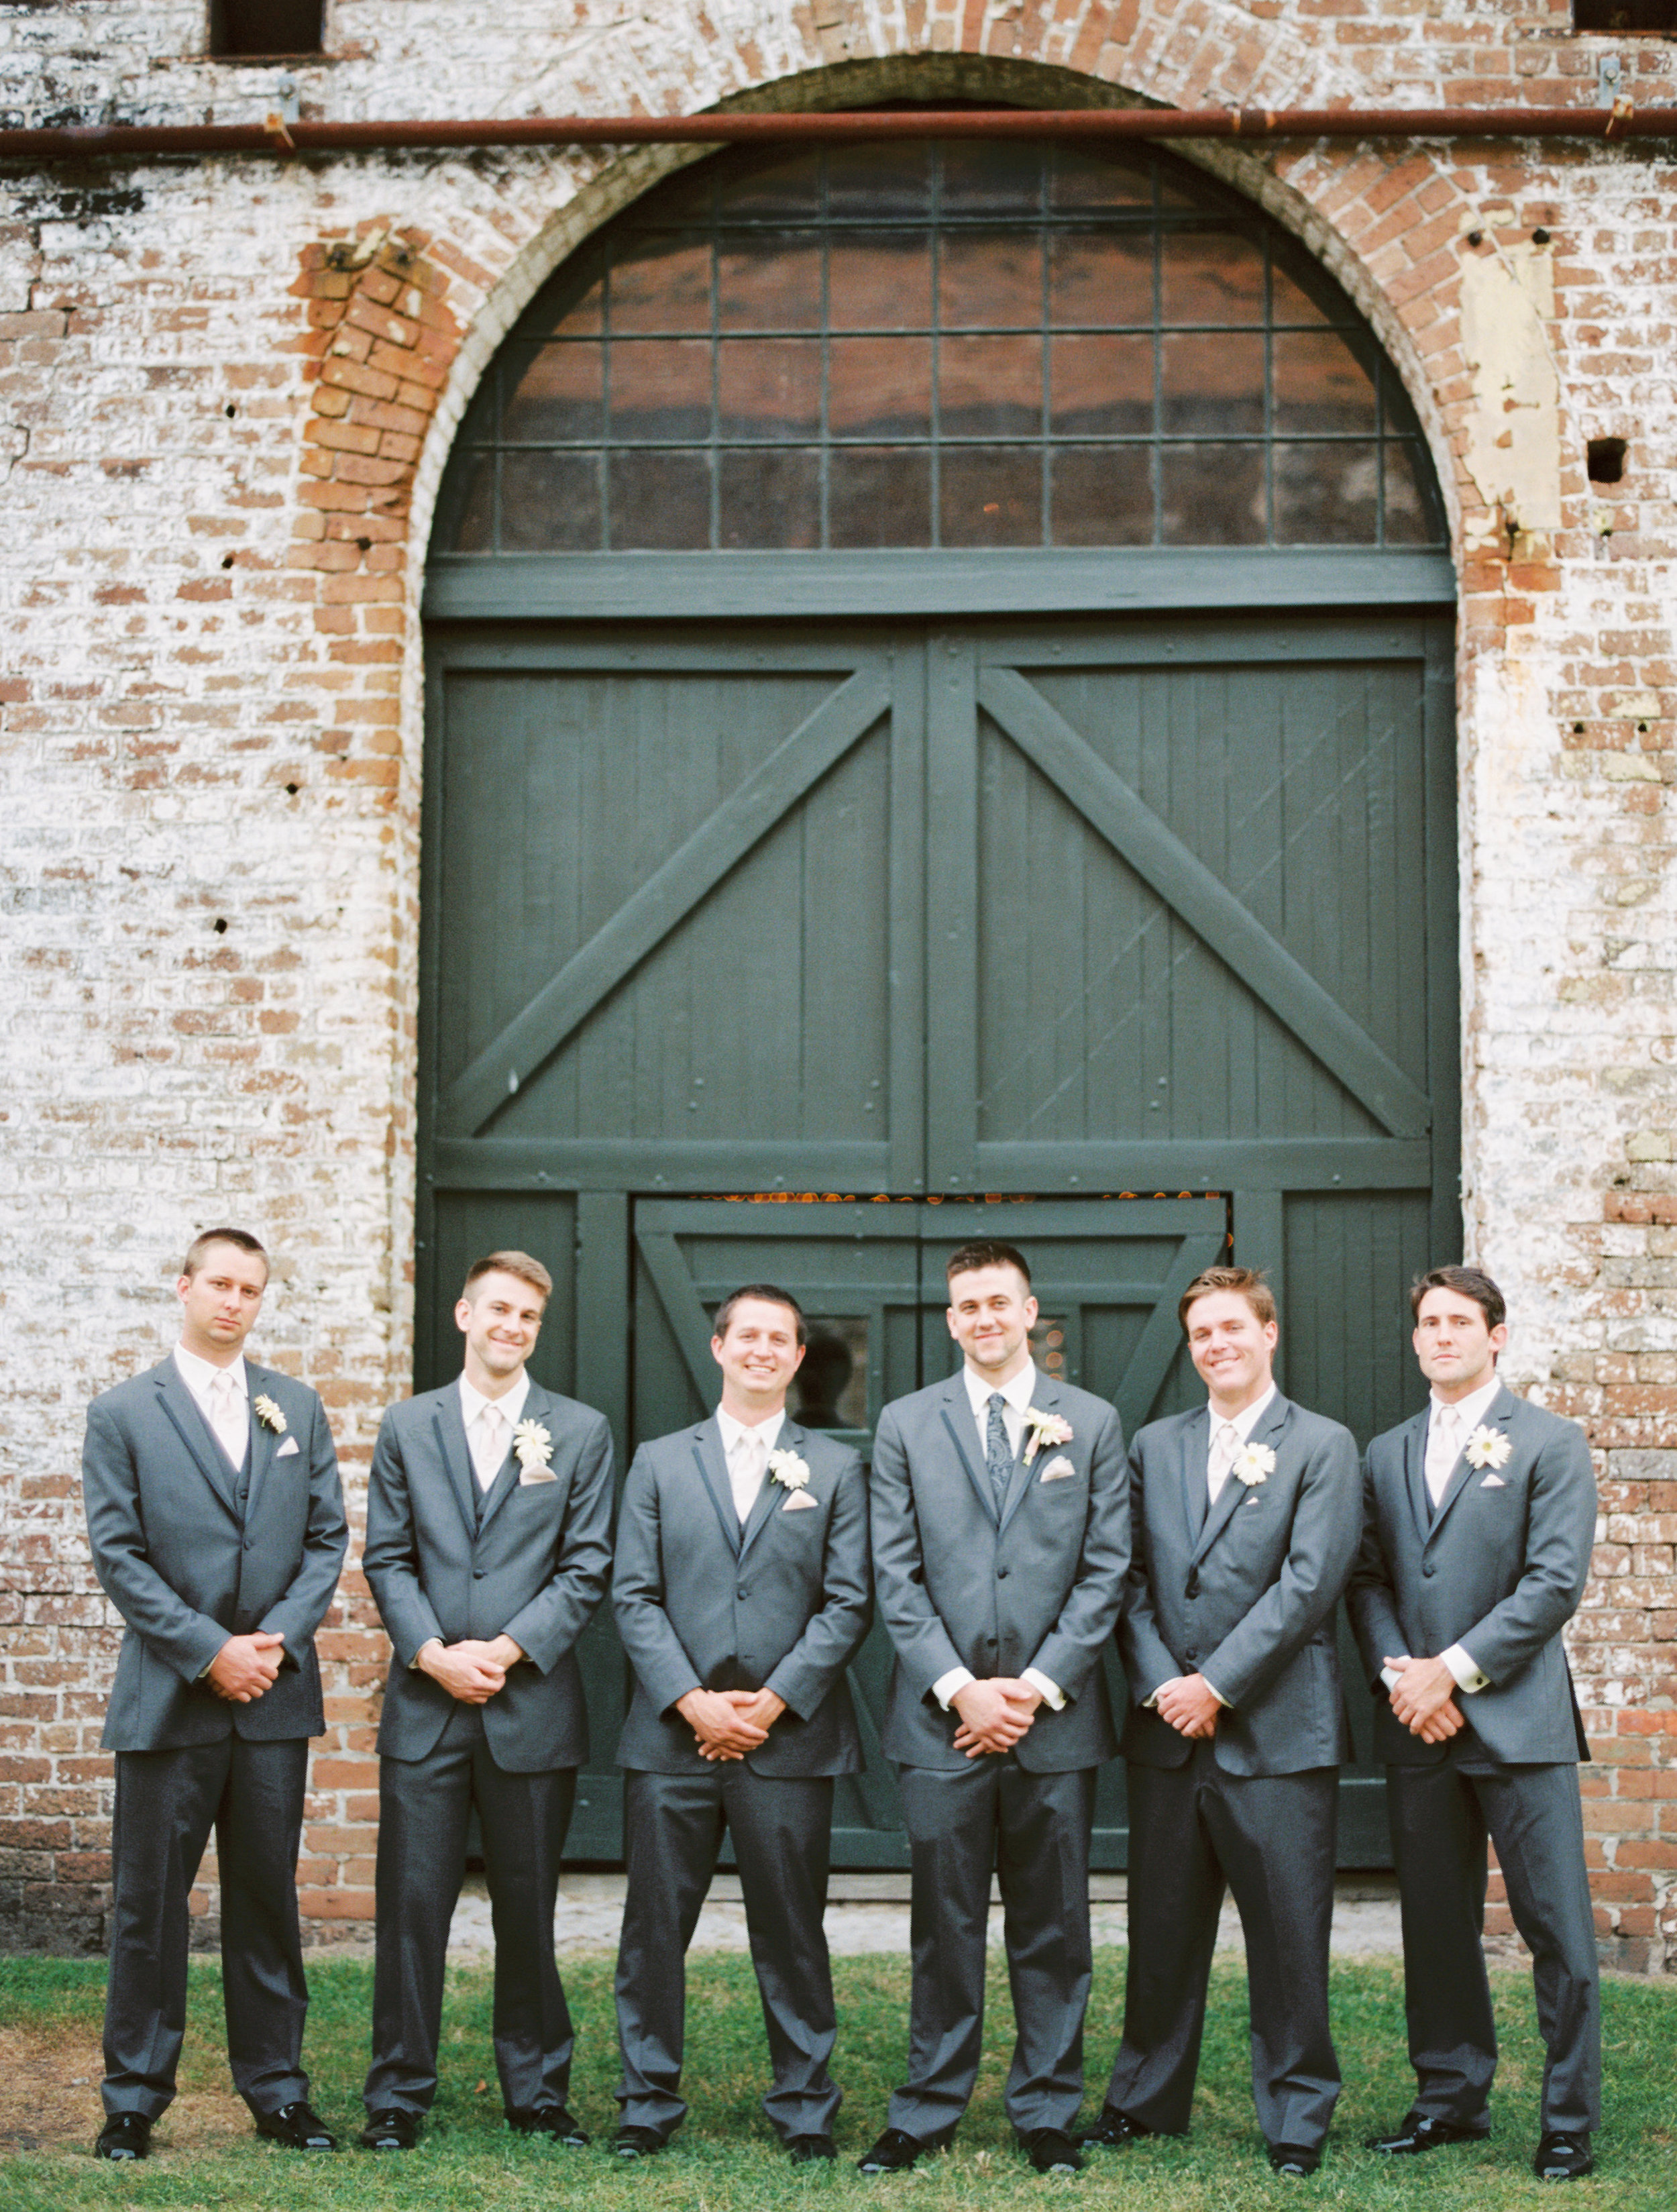 Chelsea + Charles' Georgia State Railroad Museum wedding in Savannah by Rach Loves Troy Photo + Cinema